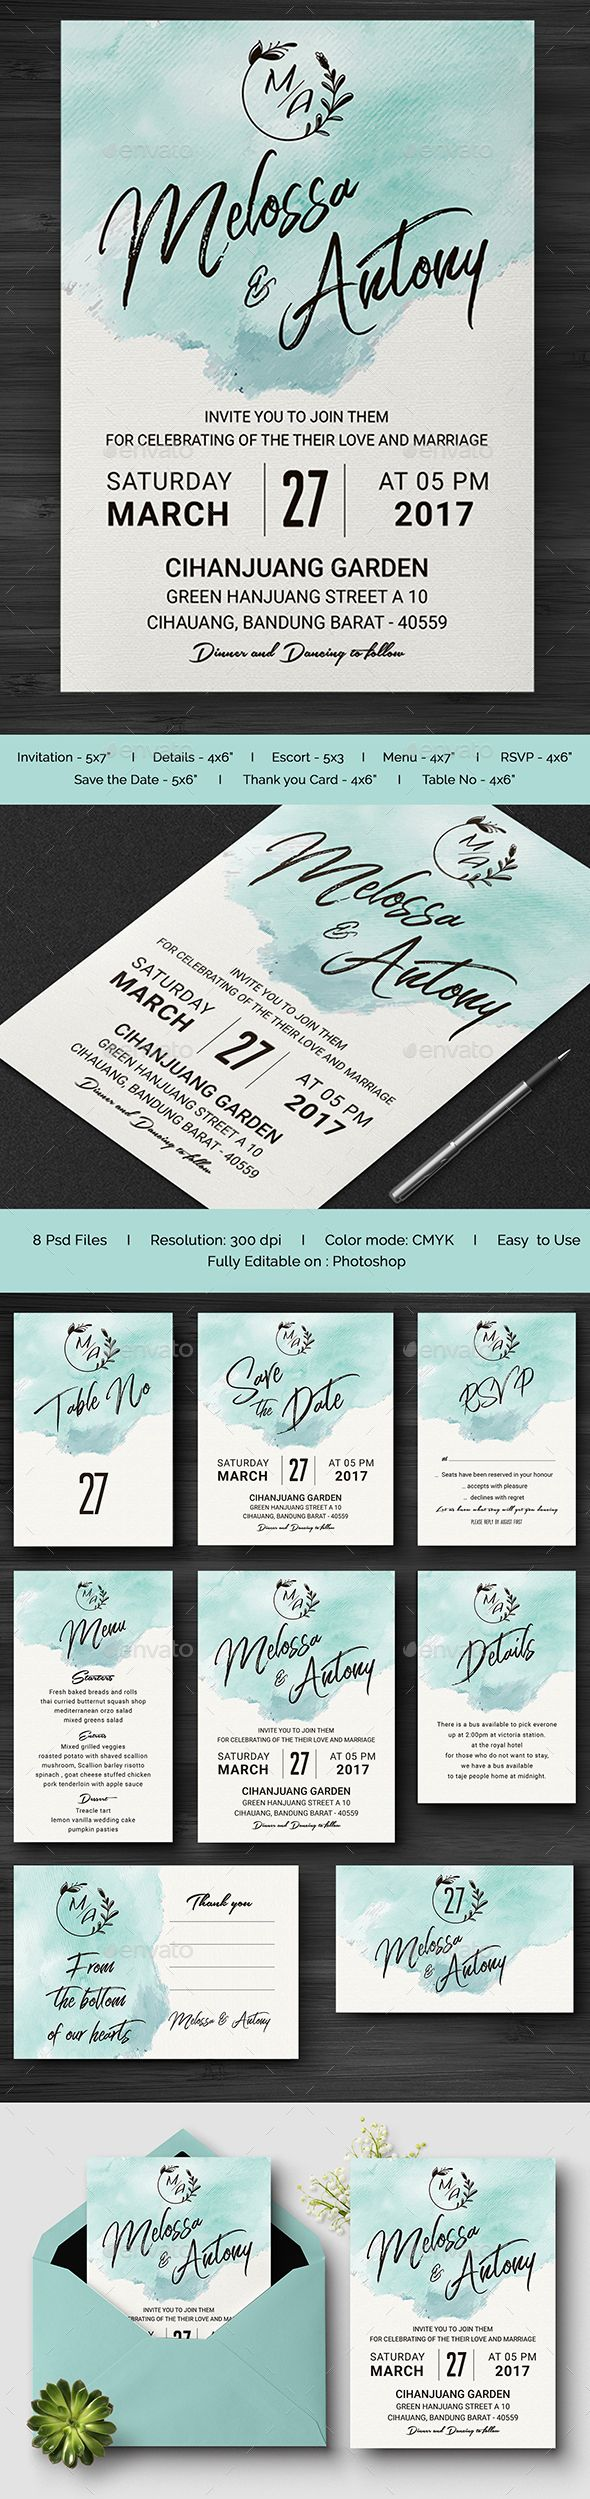 business event invitation templates%0A Best     Wedding invitation templates ideas on Pinterest   Diy wedding  stationery  Wedding invitation wording templates and Wedding invitation  wording